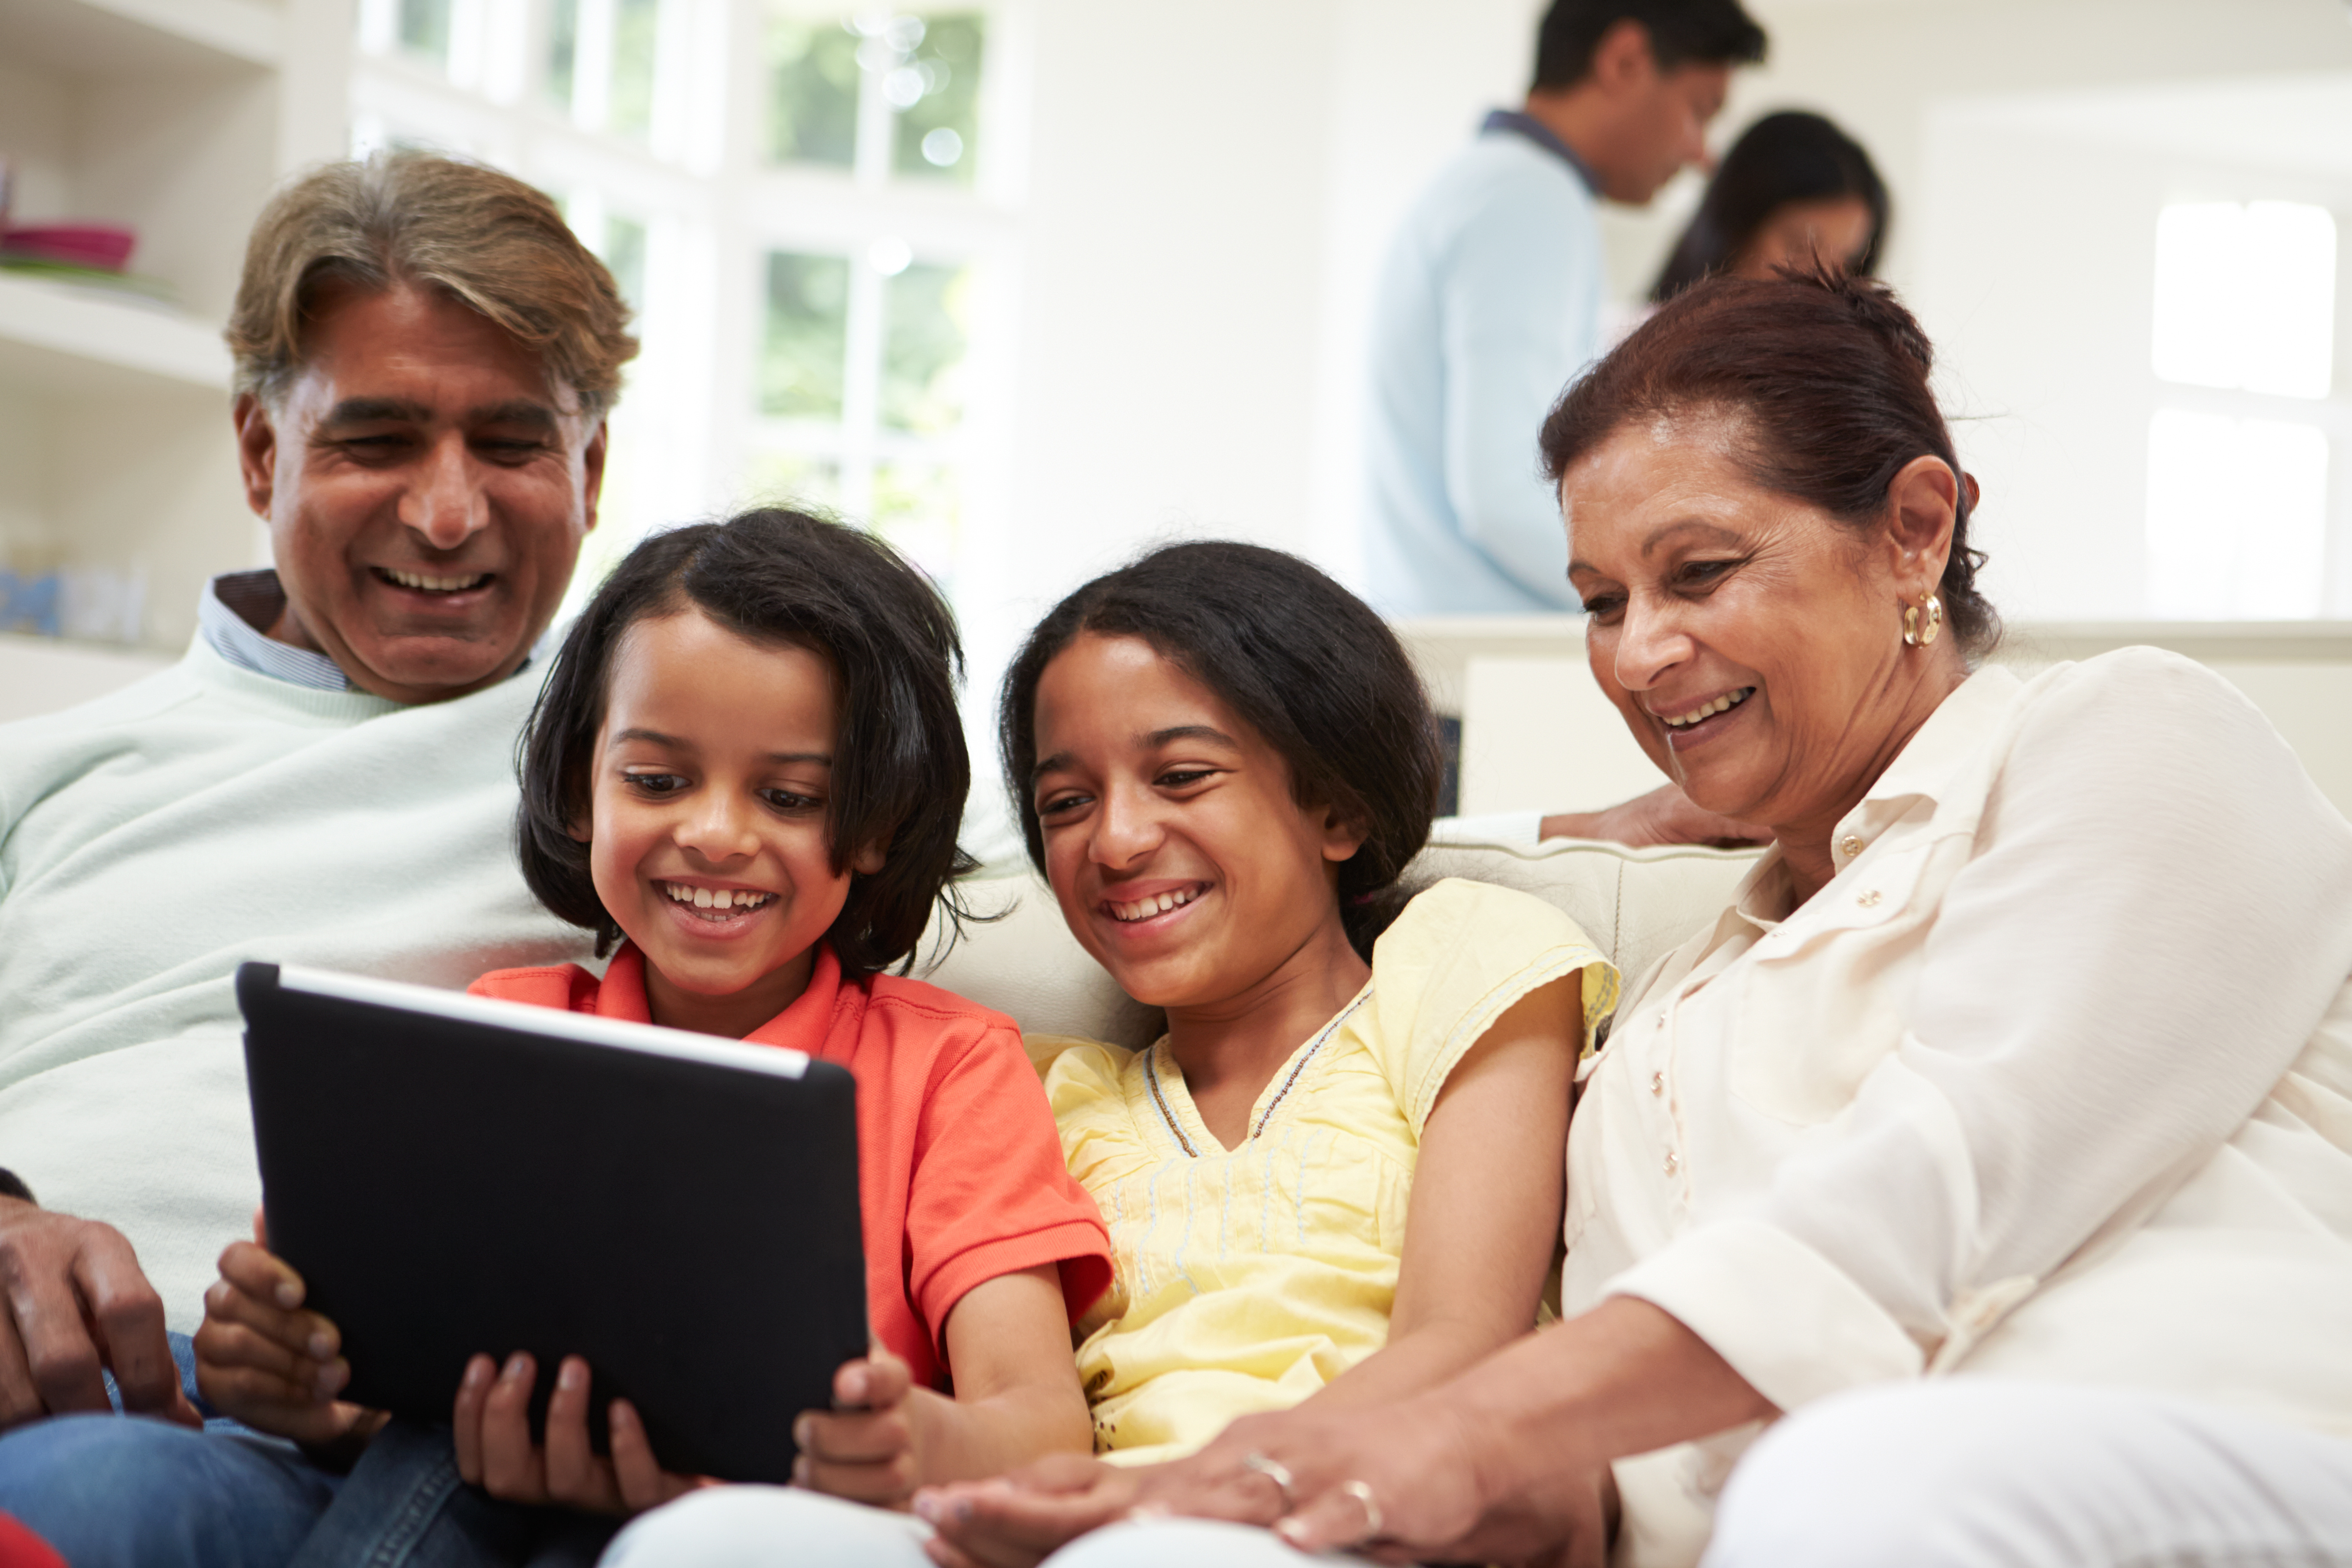 Image: Multi-Generation Indian Family With Digital Tablet